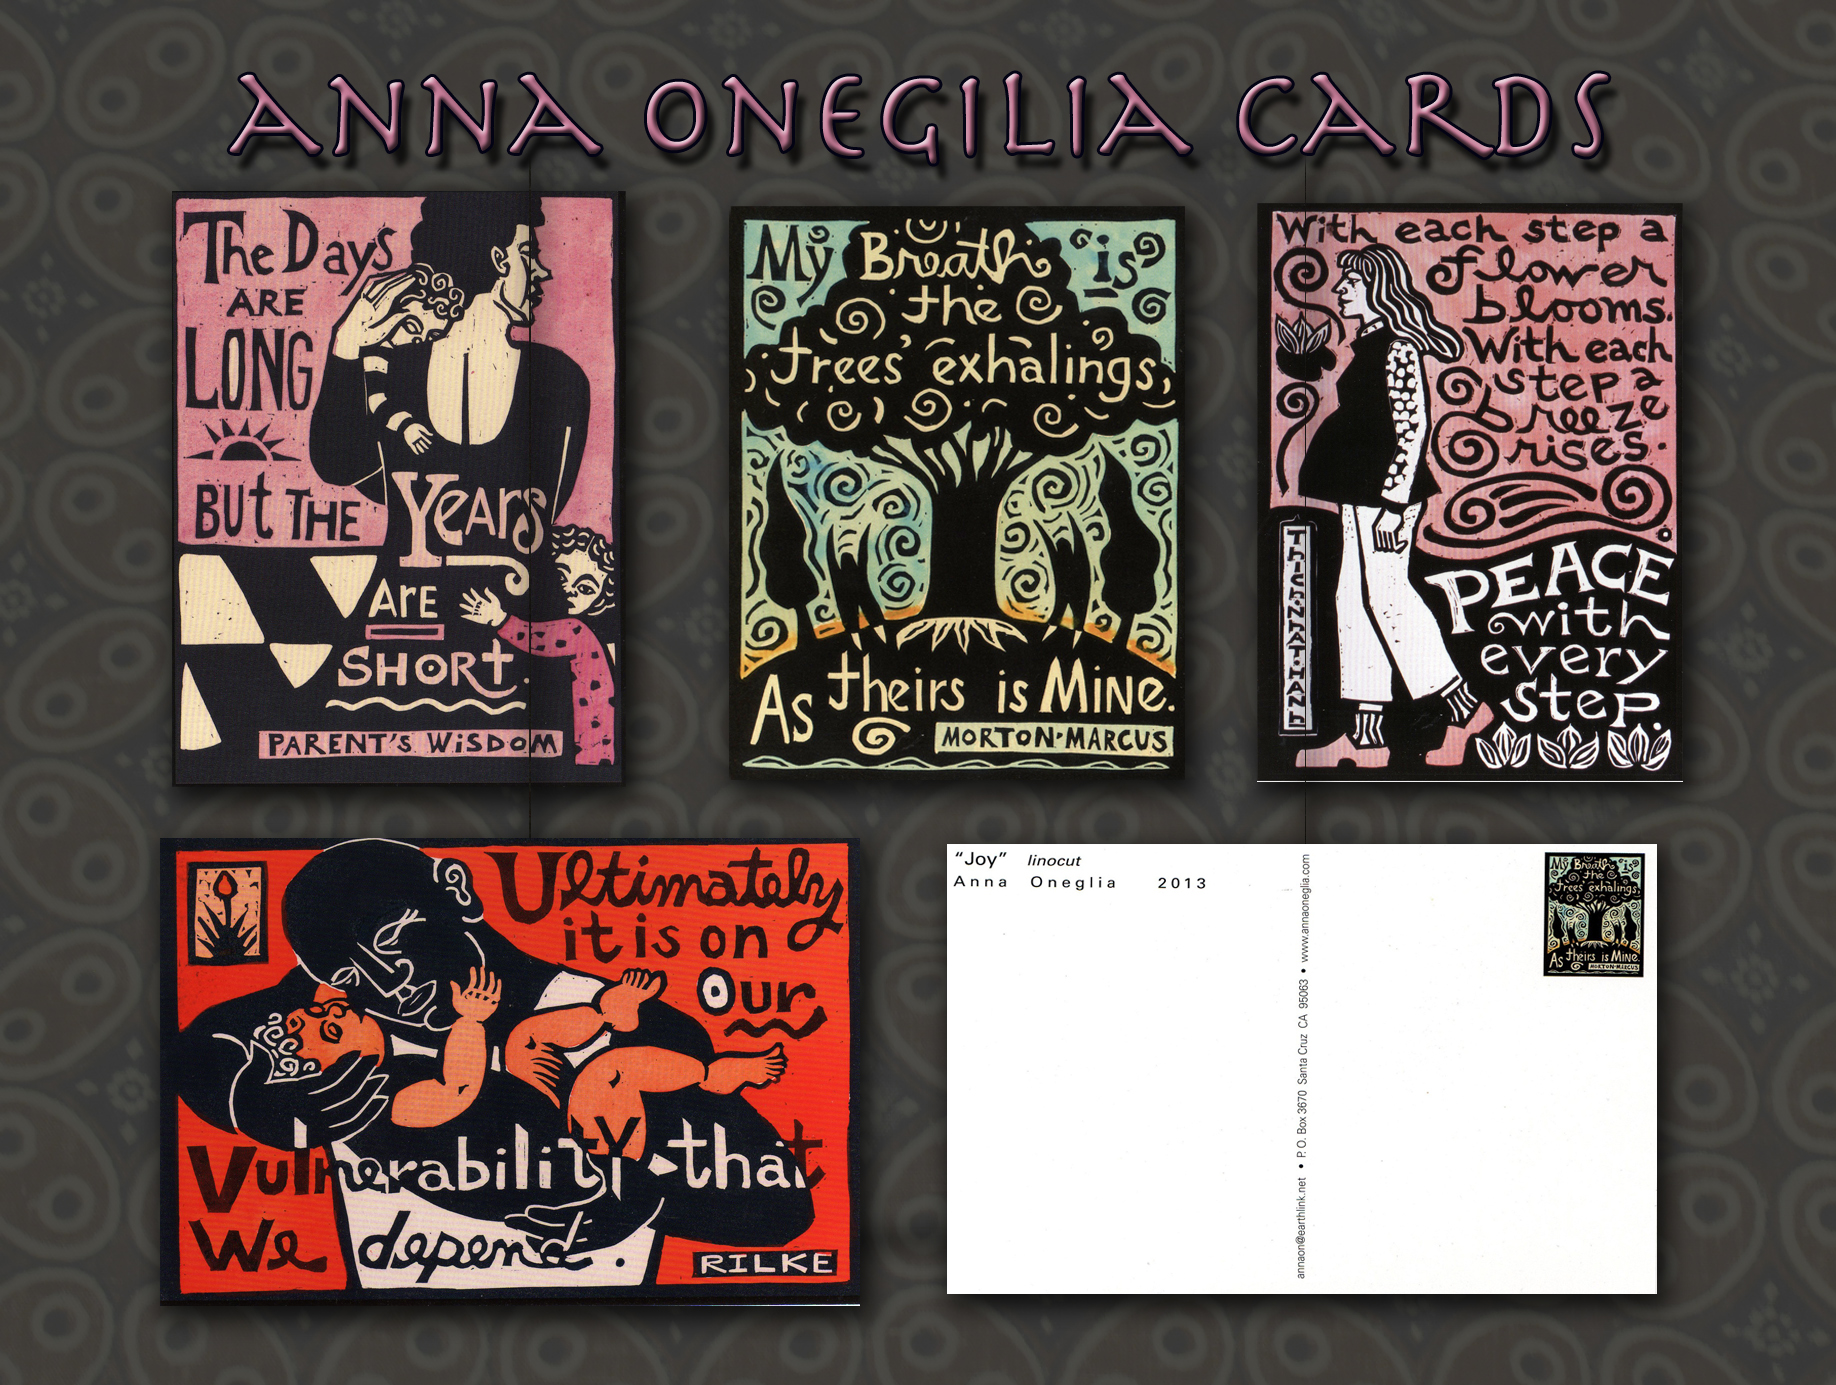 Anna Oneglia Quote Card